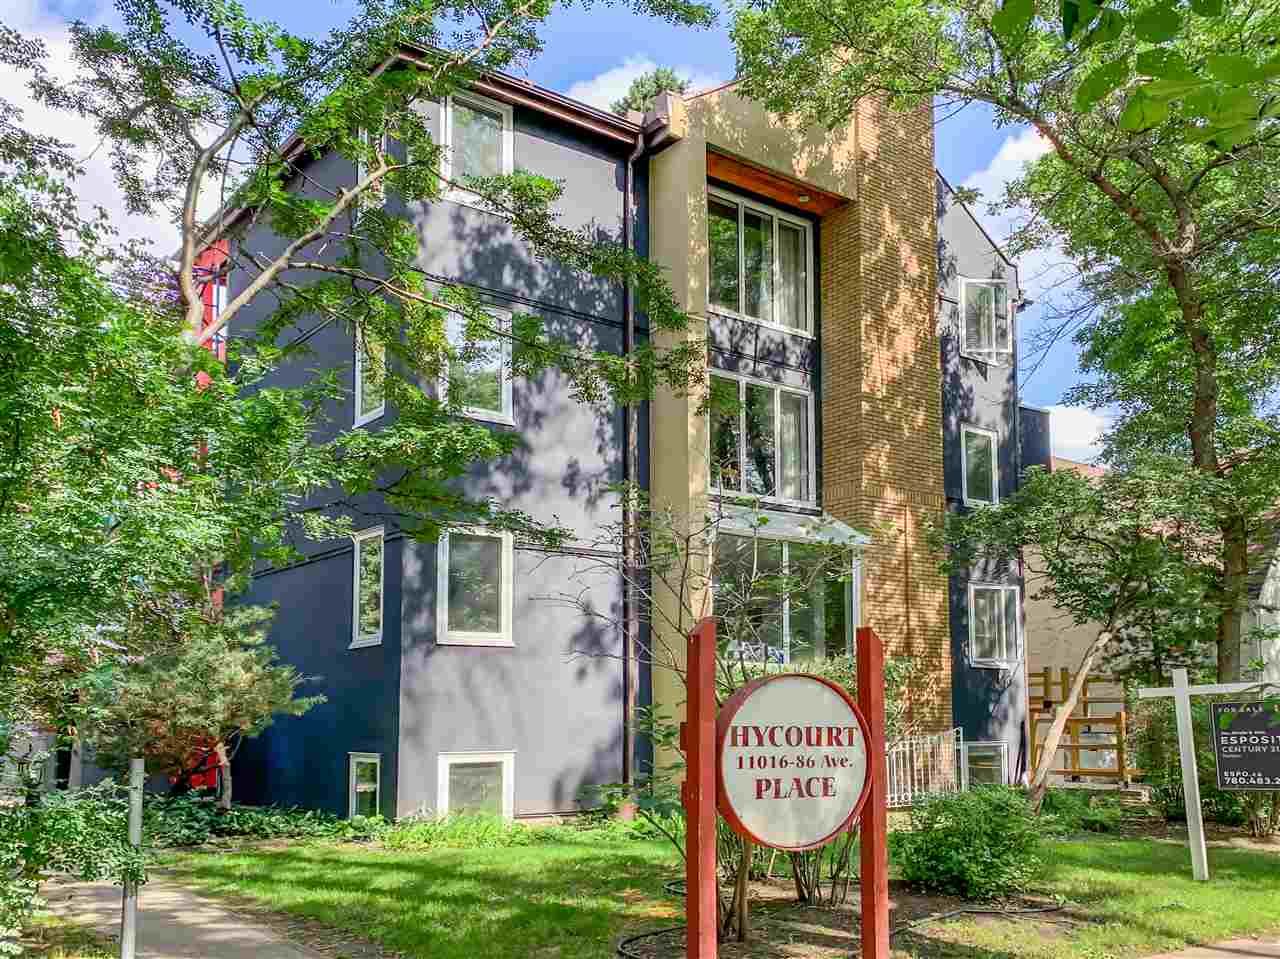 MLS® listing #E4169405 for sale located at 12 11016 86 Avenue